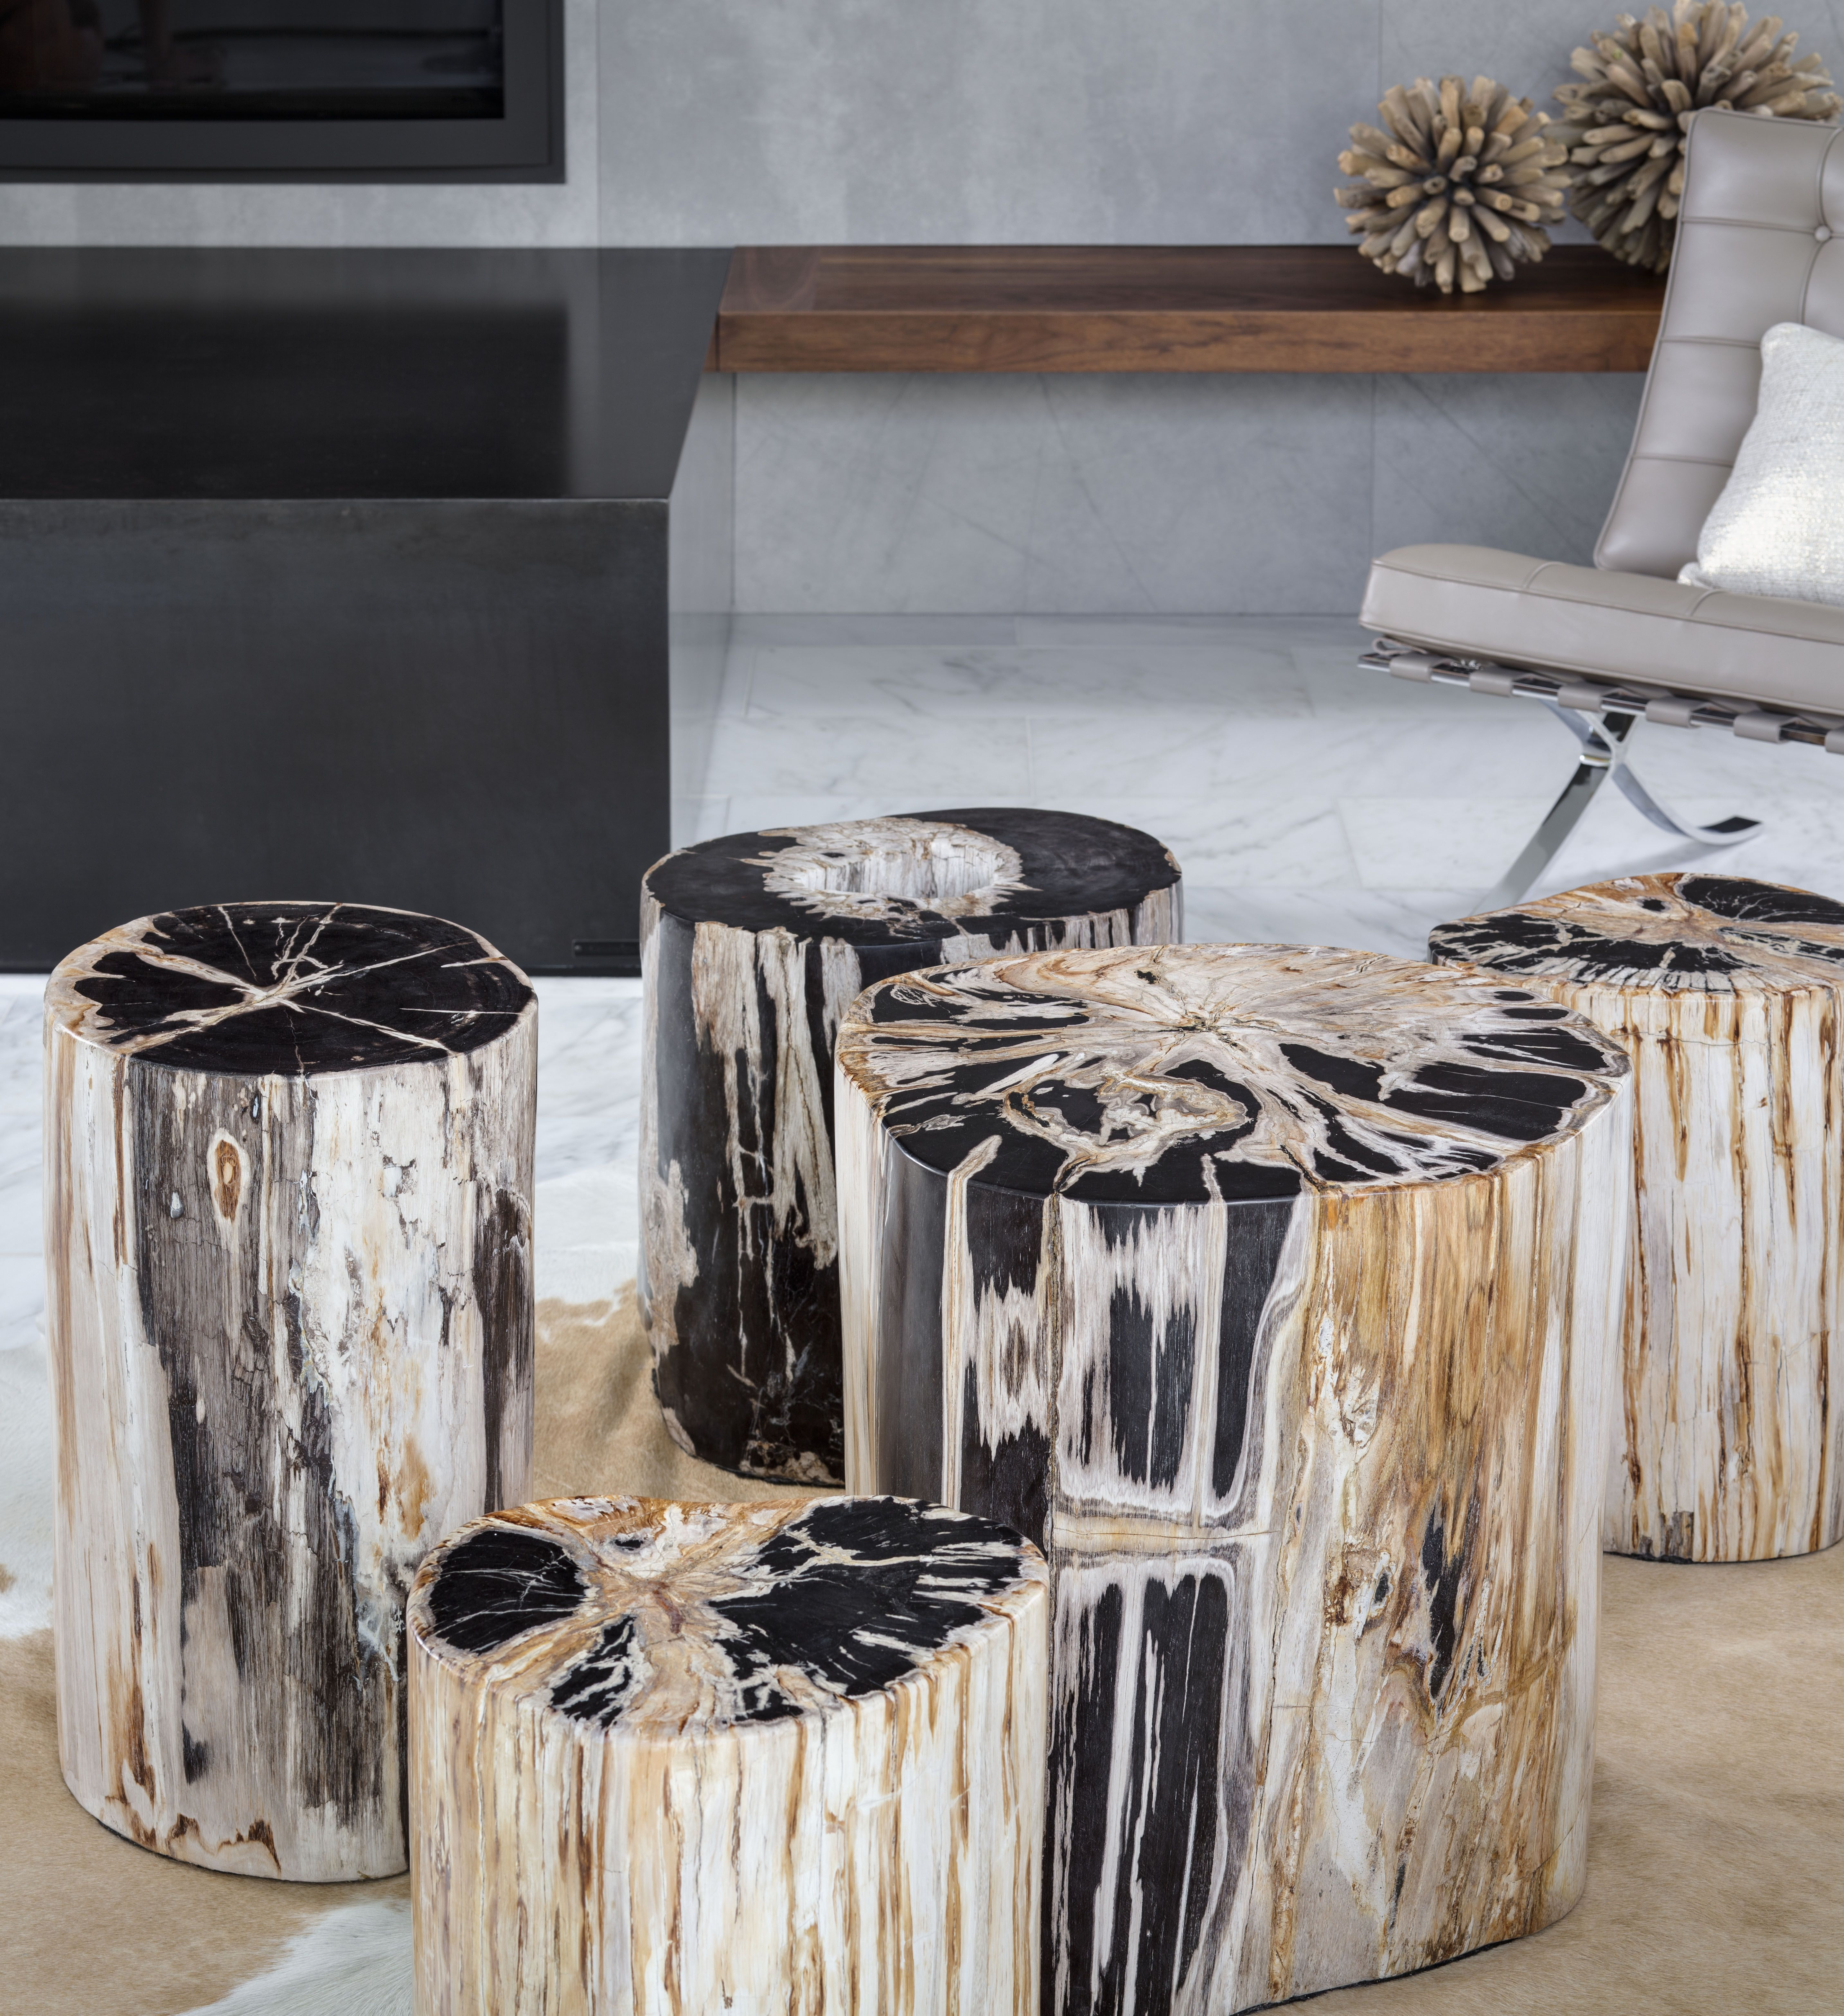 David Alan Collection Cluster of our petrified wood stumps used